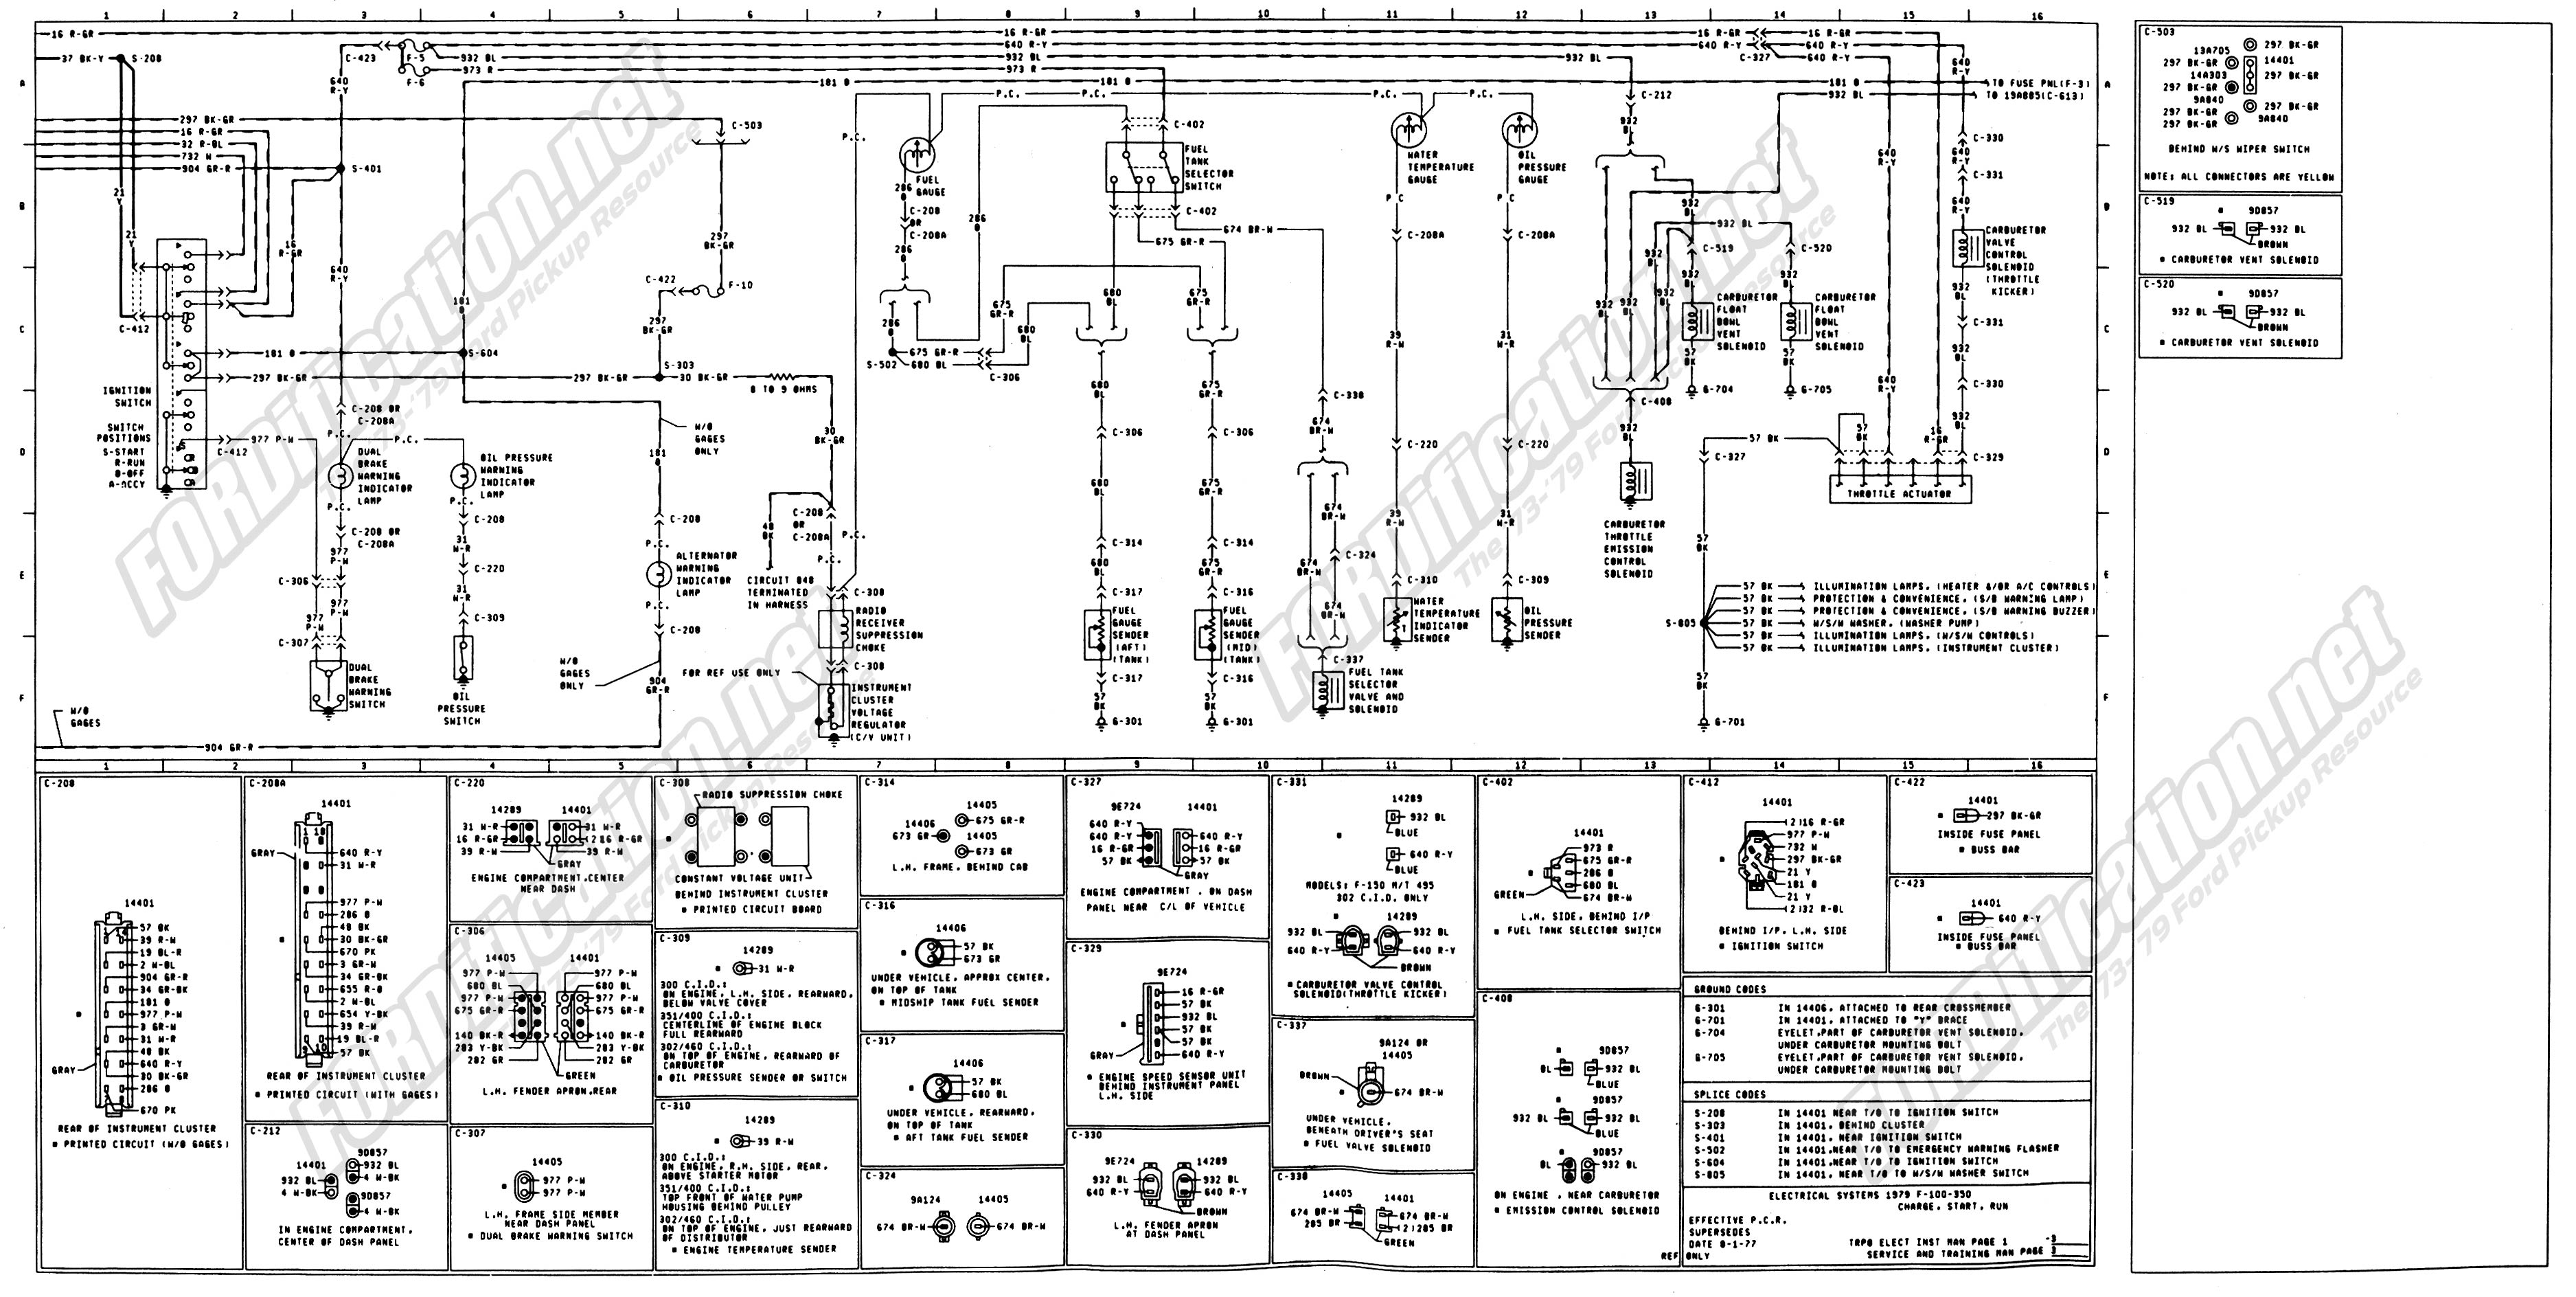 wiring_79master_3of9 2001 f350 wiring diagram ford super duty wiring diagram \u2022 wiring 2013 ford f350 wiring diagram at gsmportal.co